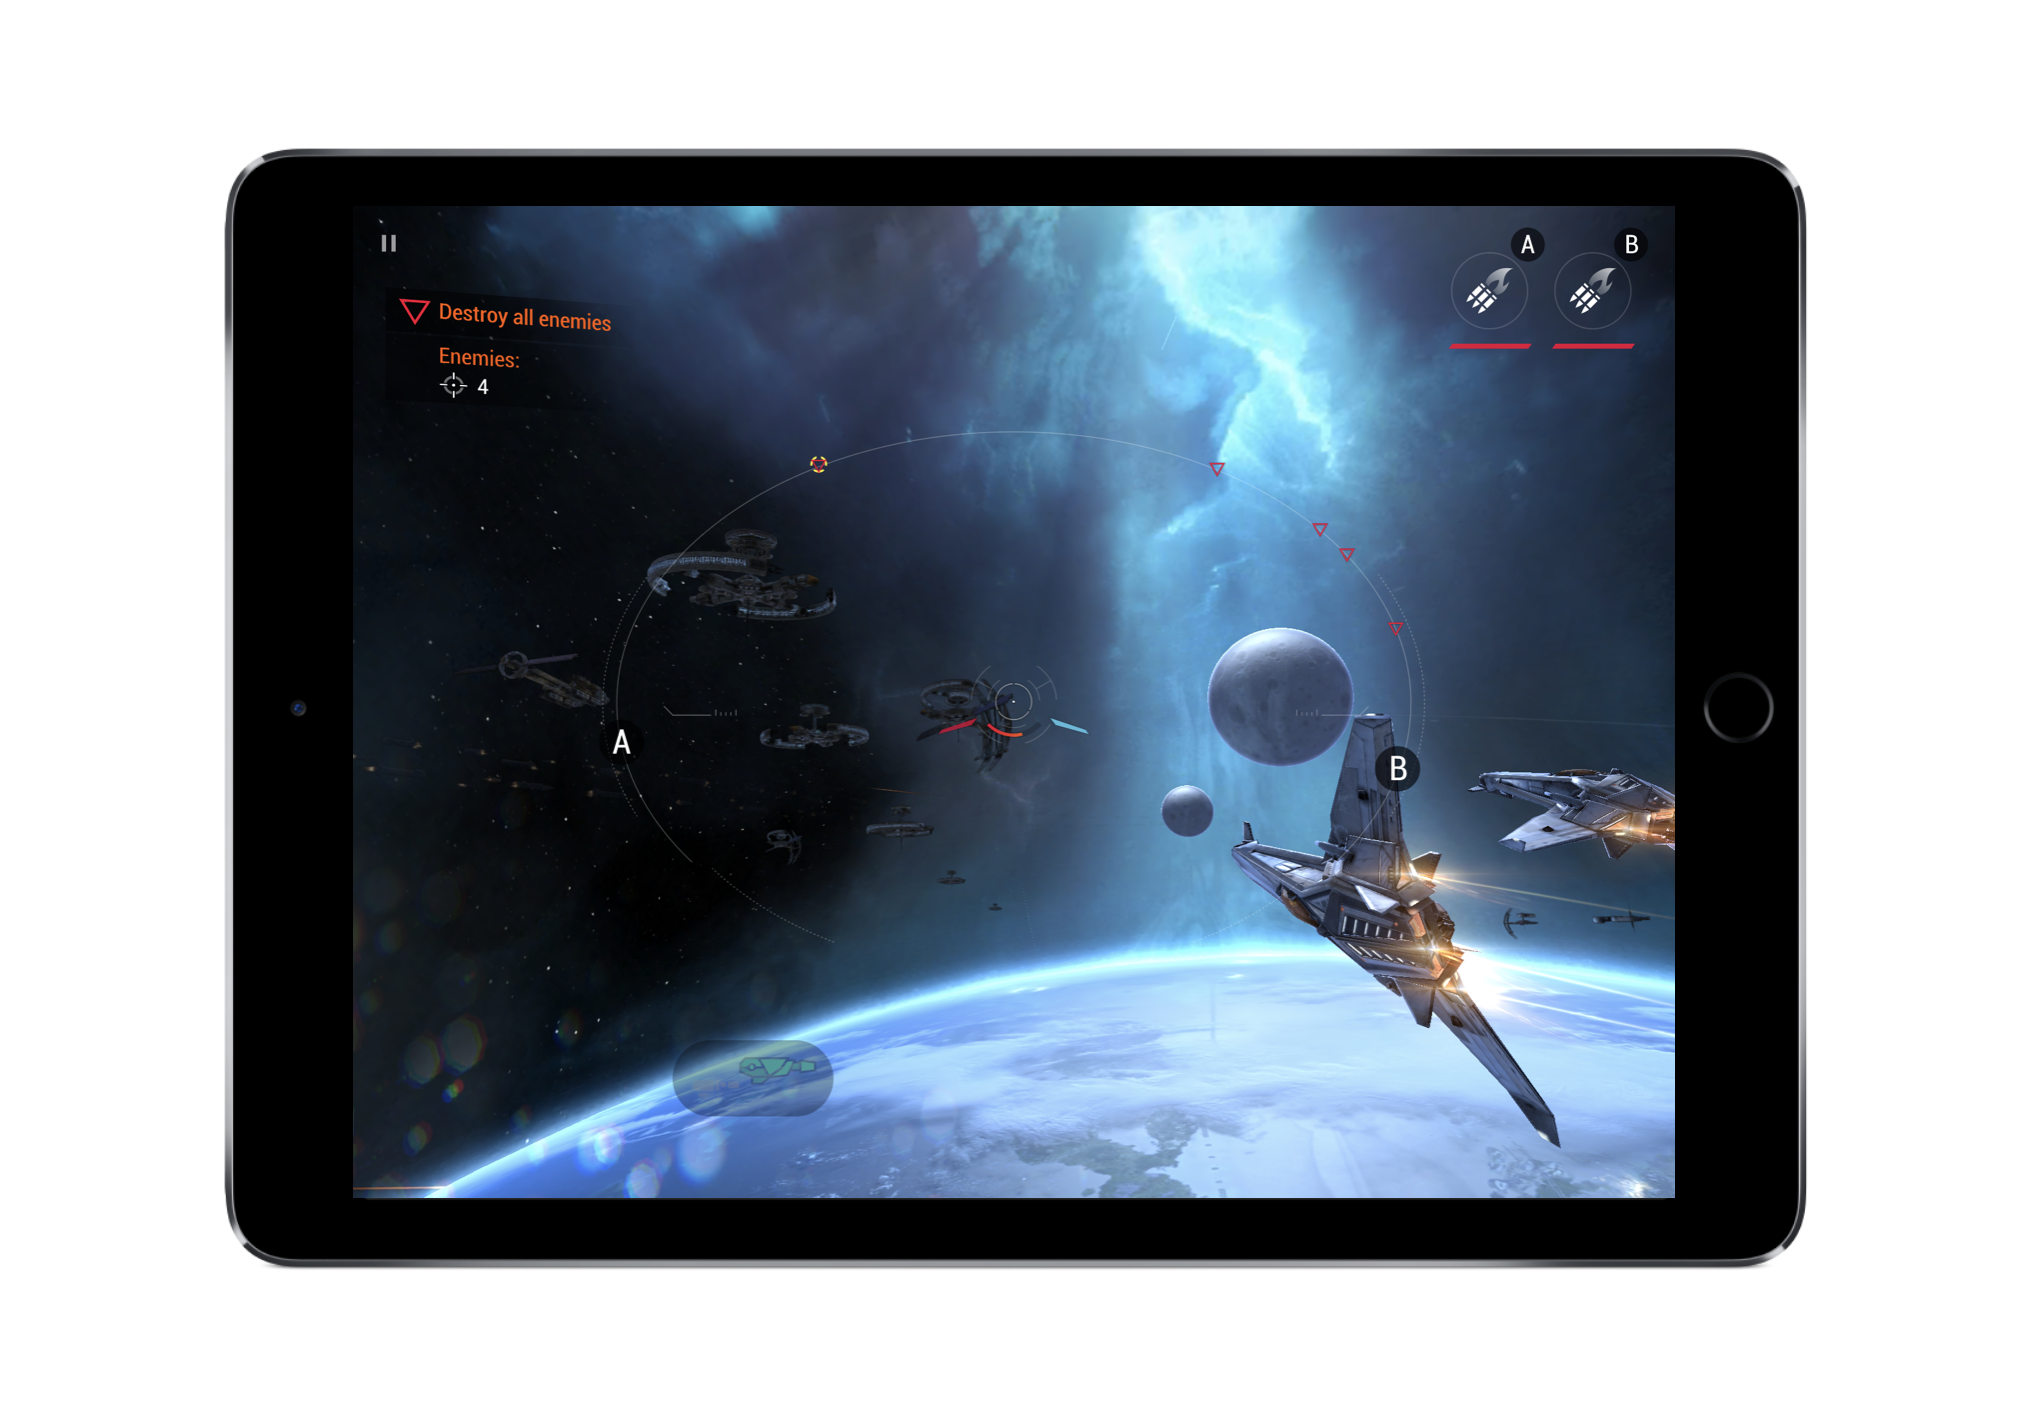 In  Galaxy on Fire- Manticore RISING by Fishlabs, the developer gradually teaches the basic controls and metagame during the first few levels. Later on, they explain more advanced controls like the ability to evade.